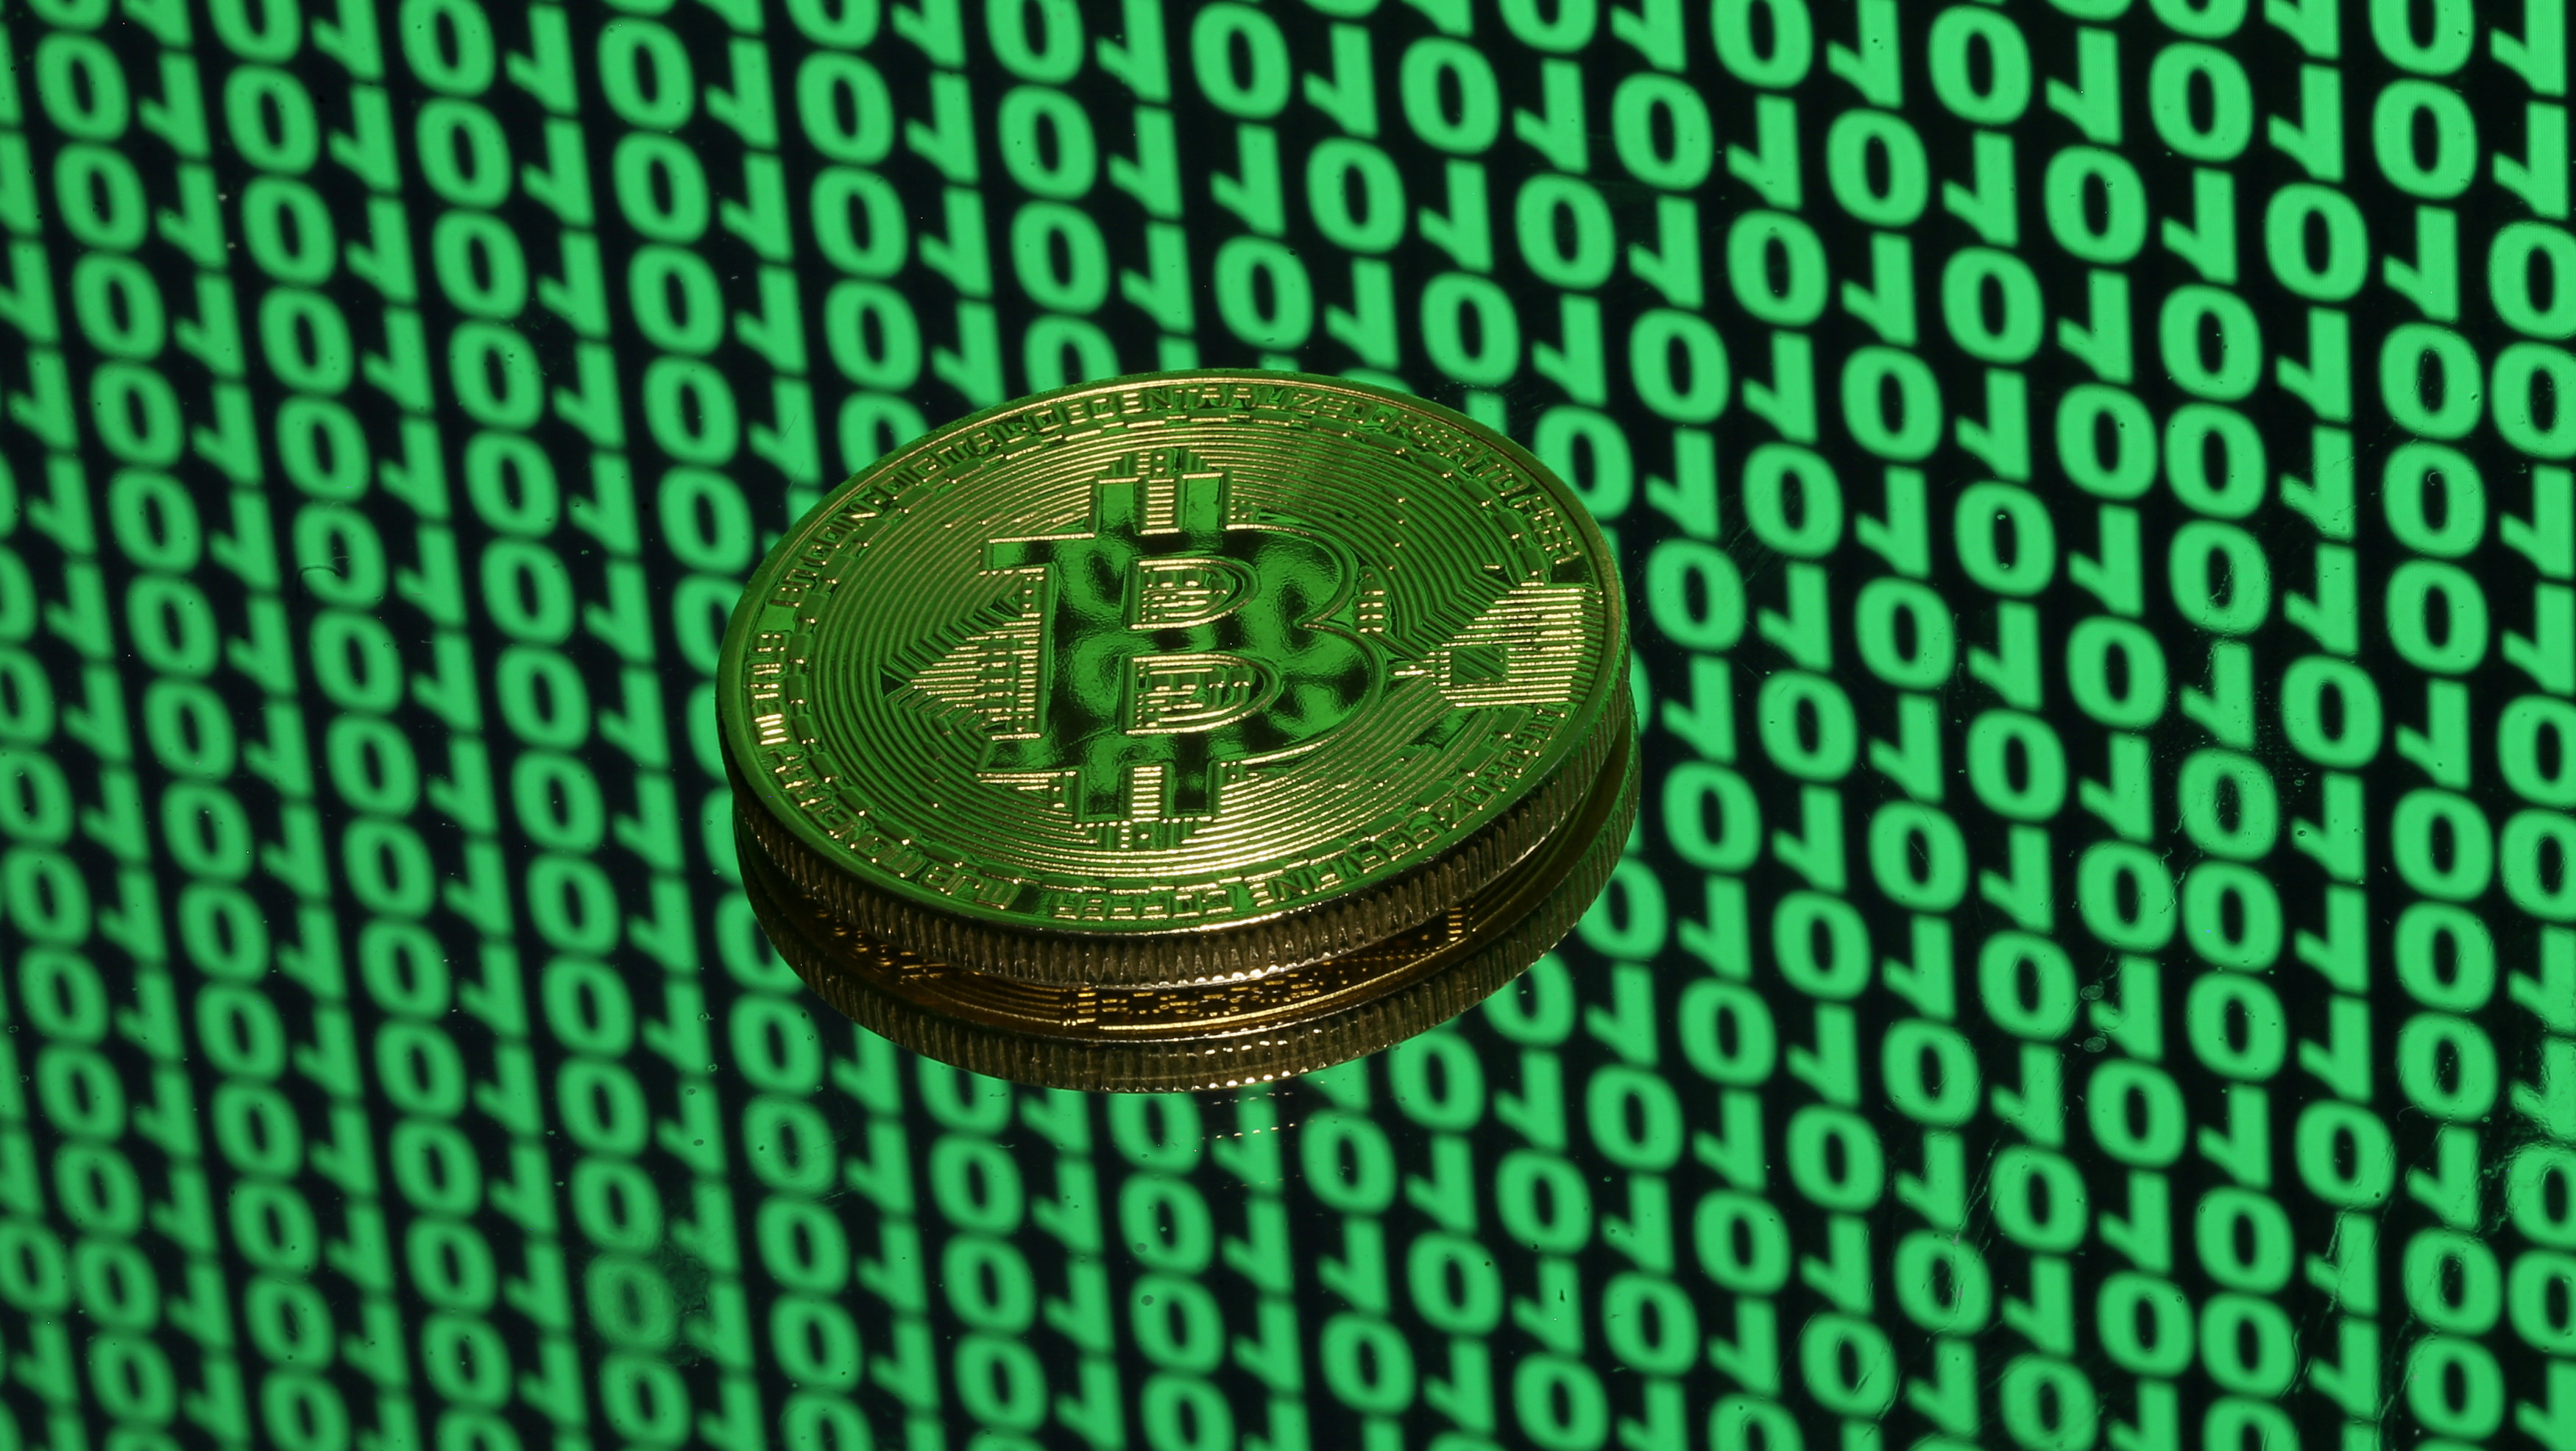 A token of the virtual currency Bitcoin is seen placed on a monitor that displays binary digits in this illustration picture, December 8, 2017. Picture taken December 8.